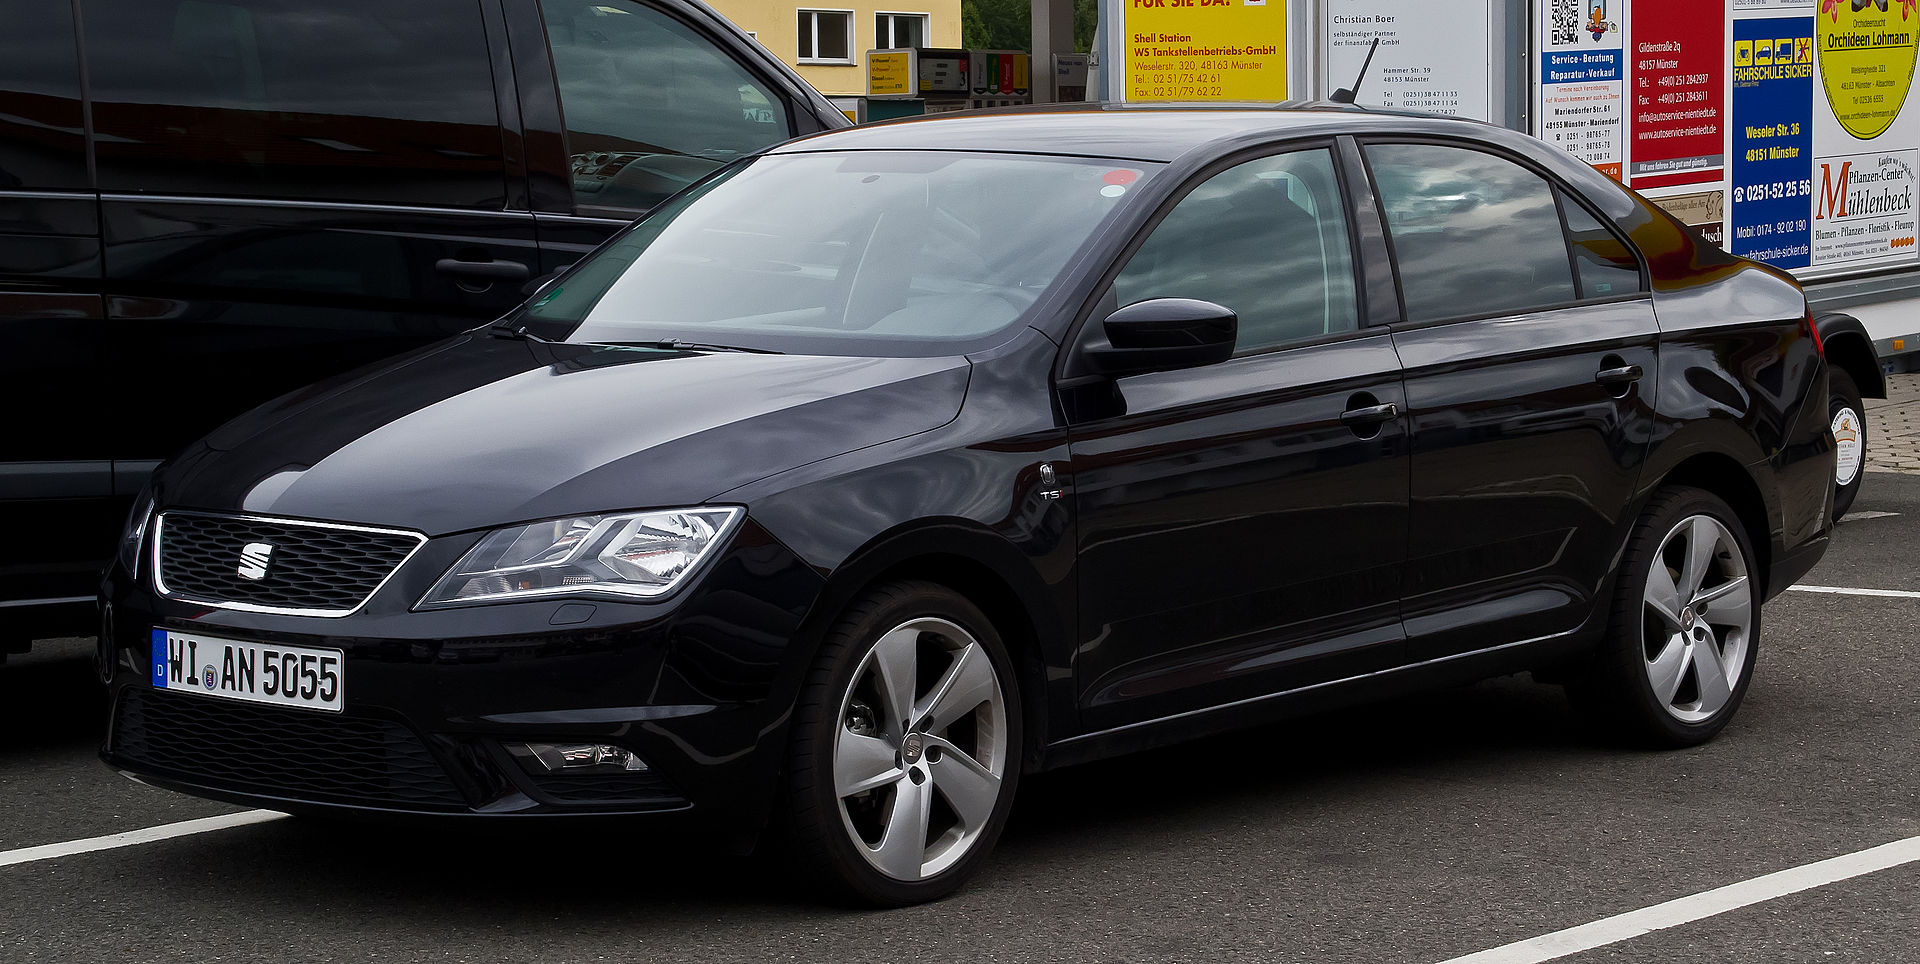 Cheap Cars For Sale In Dublin Under